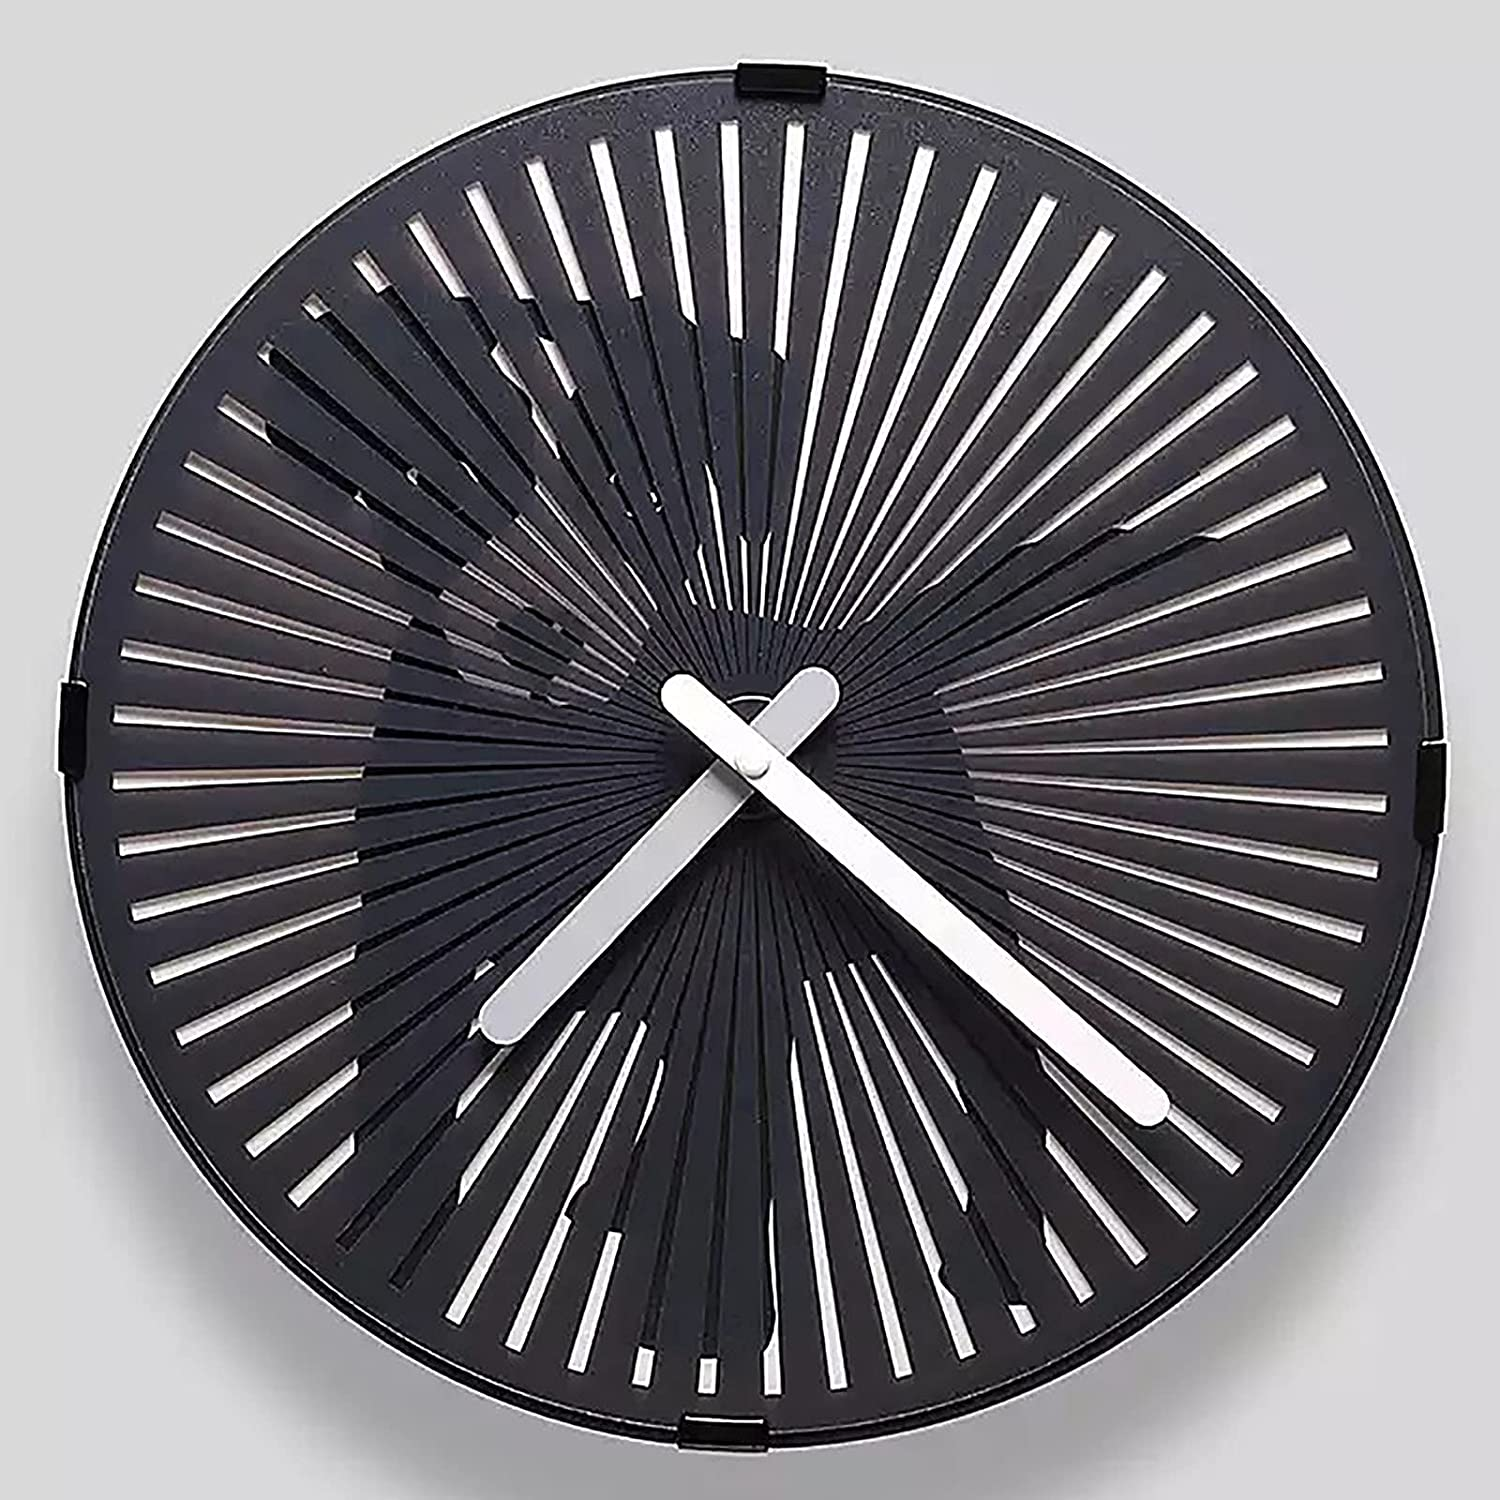 FHTD Omaha Mall Creative Dynamic Wall Clock Silent Non-Tic Battery price Operated